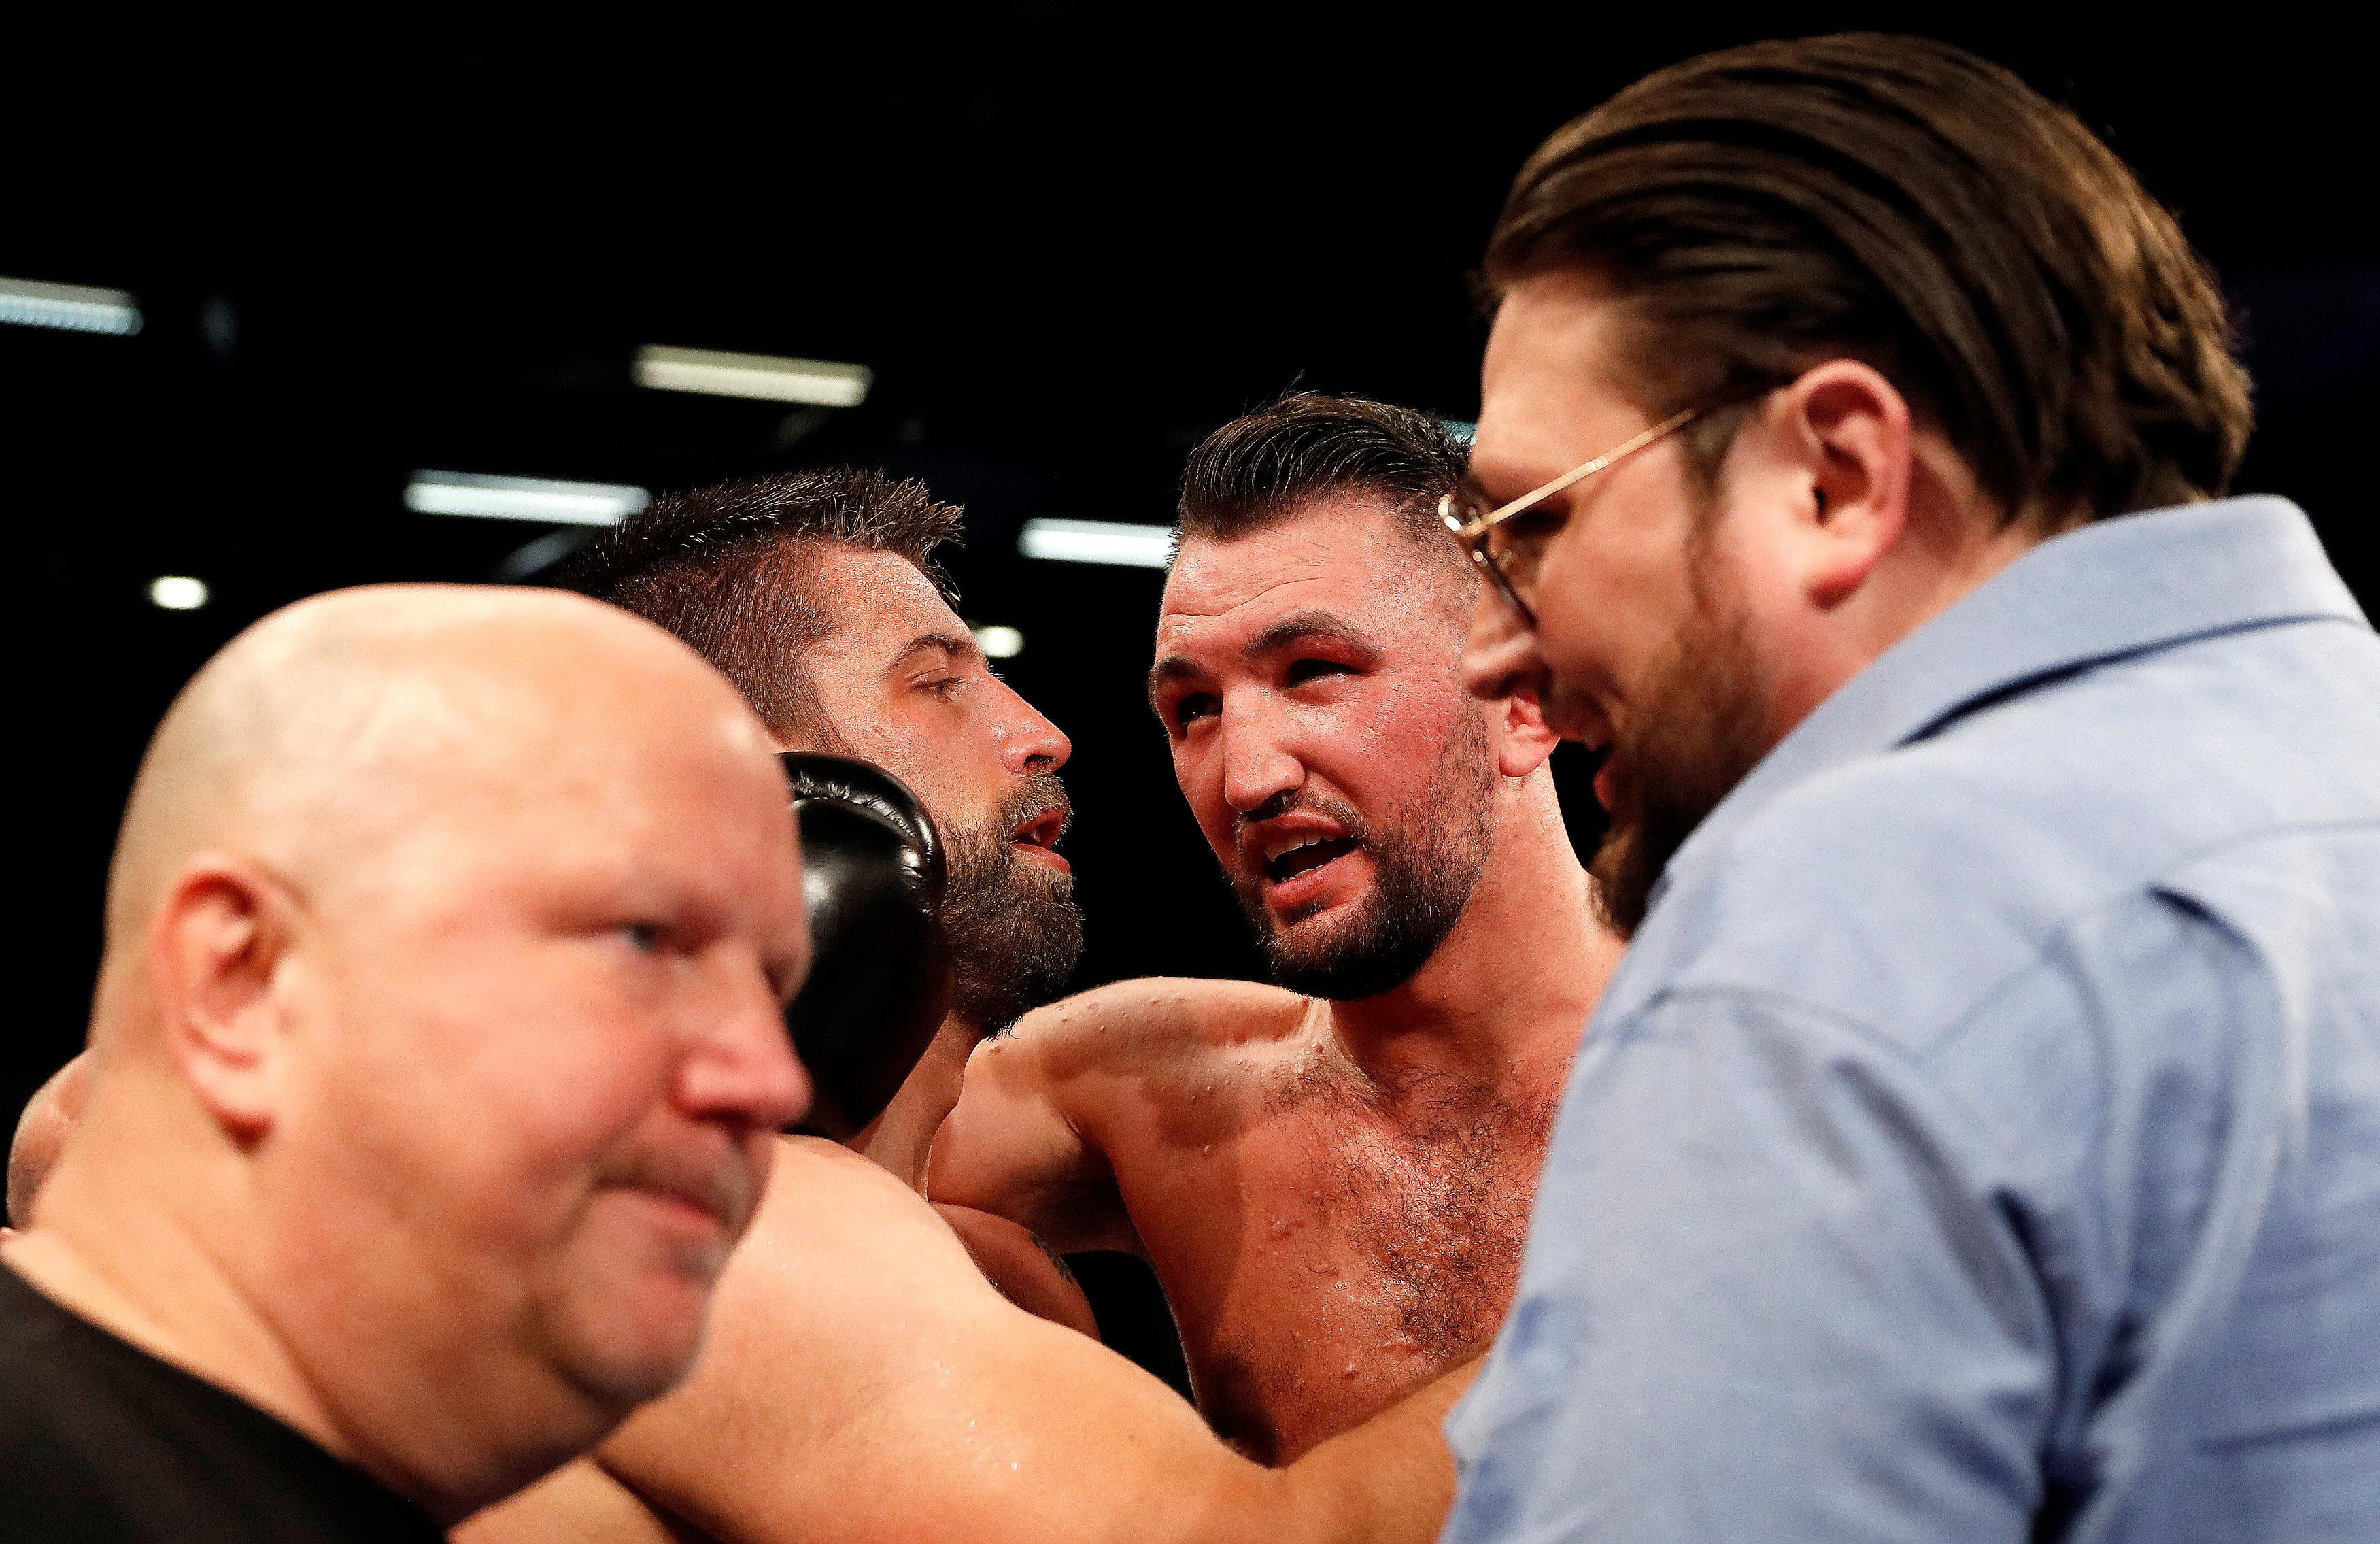 Hughie Fury smashed Sam Sexton to win the British title last time out - could he secure what would be a huge upset by beating AJ too?